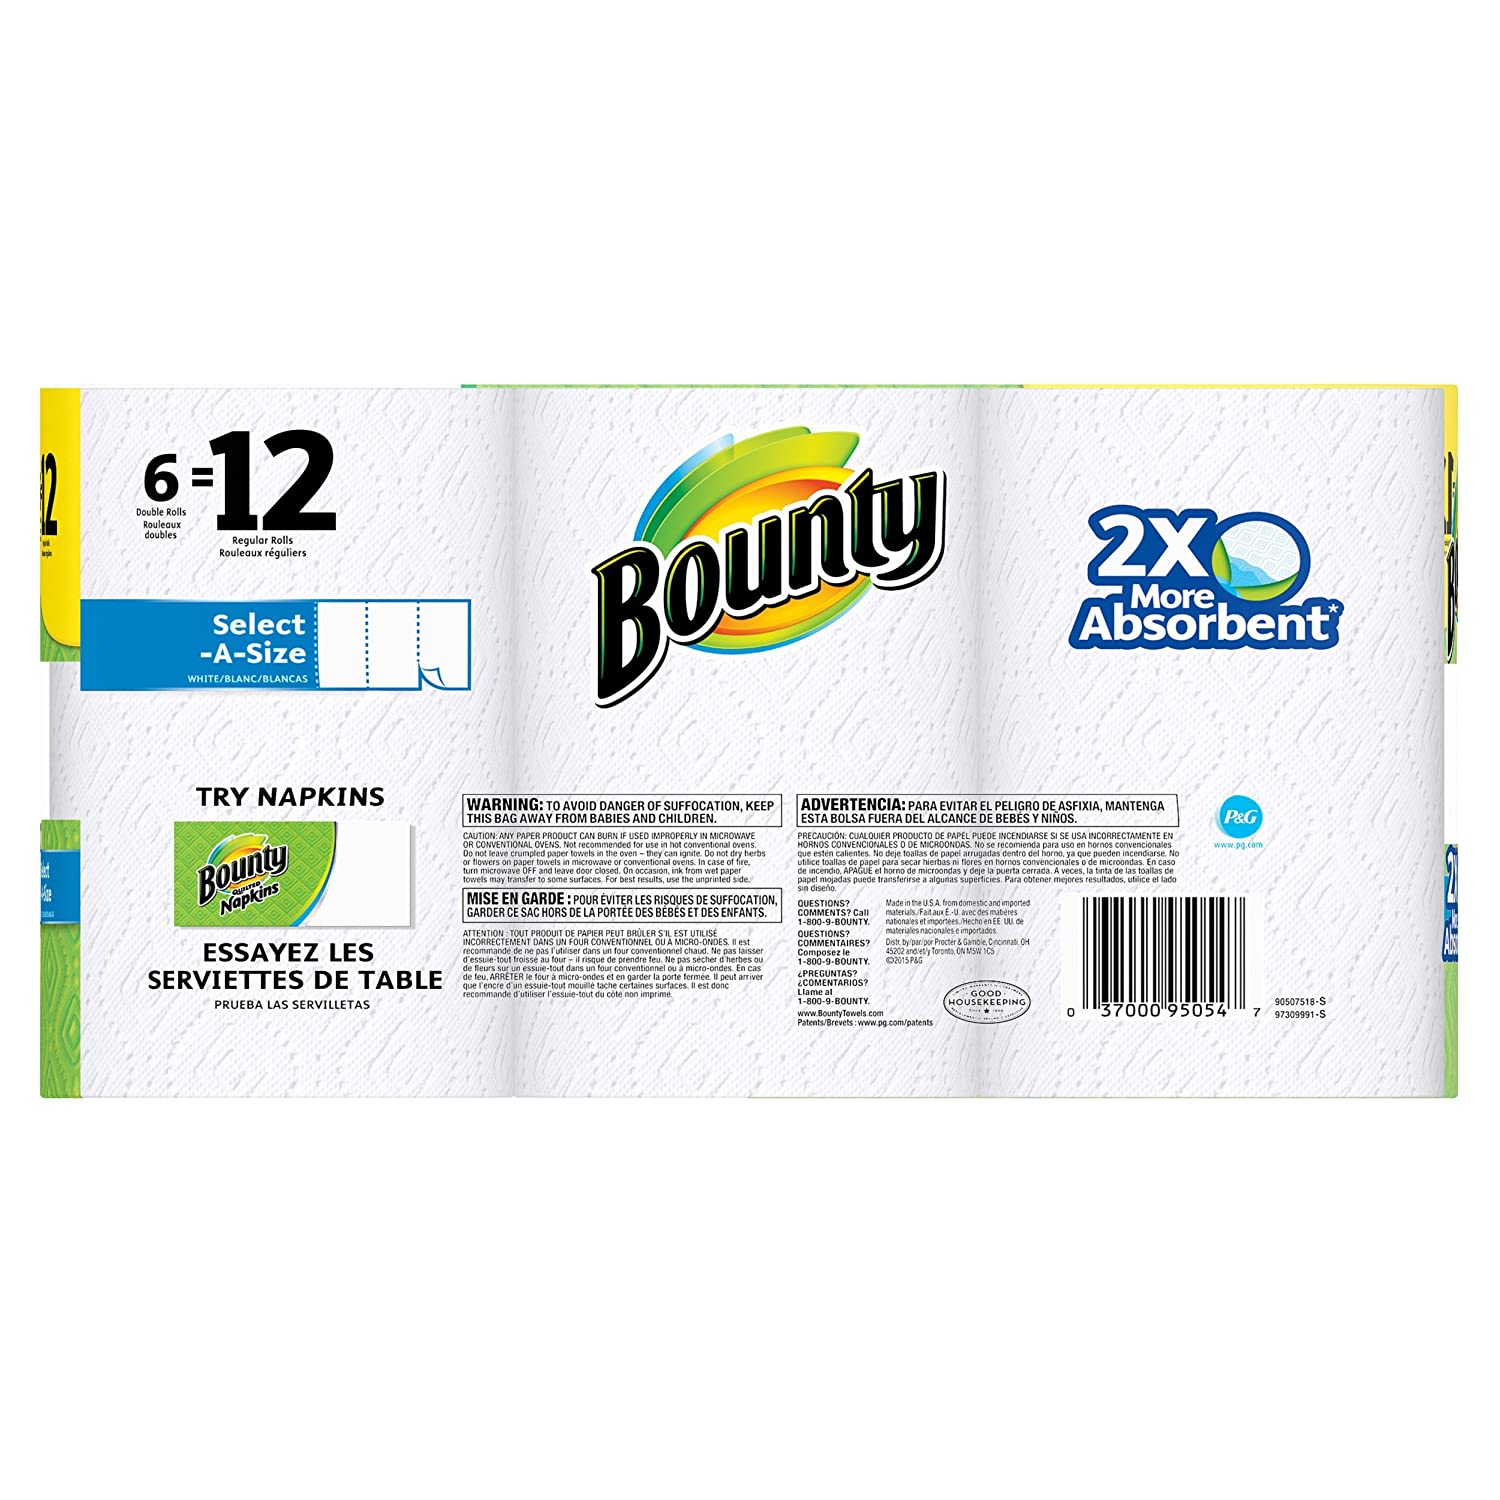 Amazon.com: Bounty Select-a-Size Paper Towels, White, 6 Double Rolls: Health & Personal Care